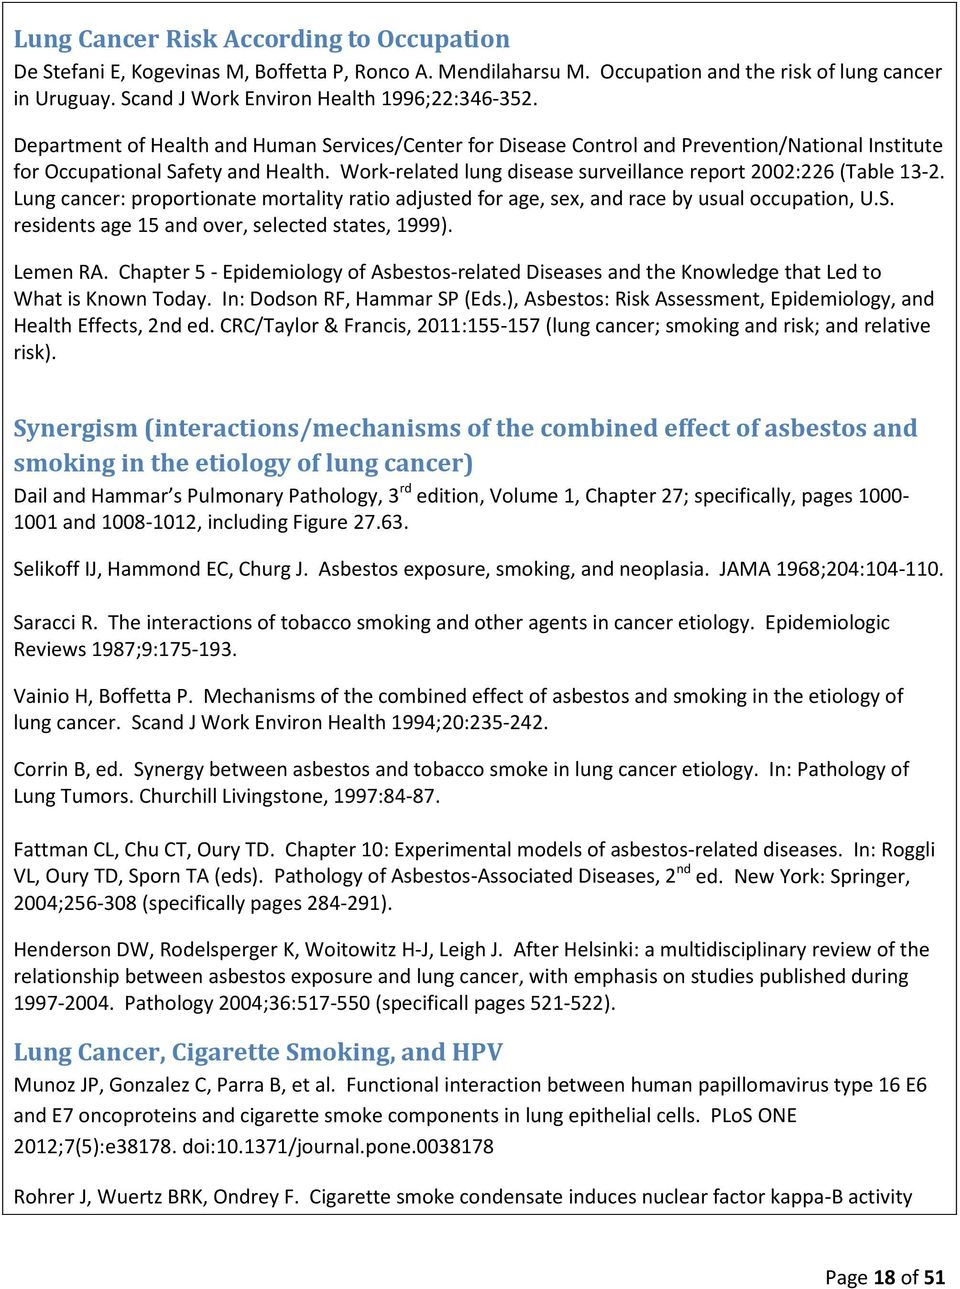 Work-related lung disease surveillance report 2002:226 (Table 13-2. Lung cancer: proportionate mortality ratio adjusted for age, sex, and race by usual occupation, U.S.